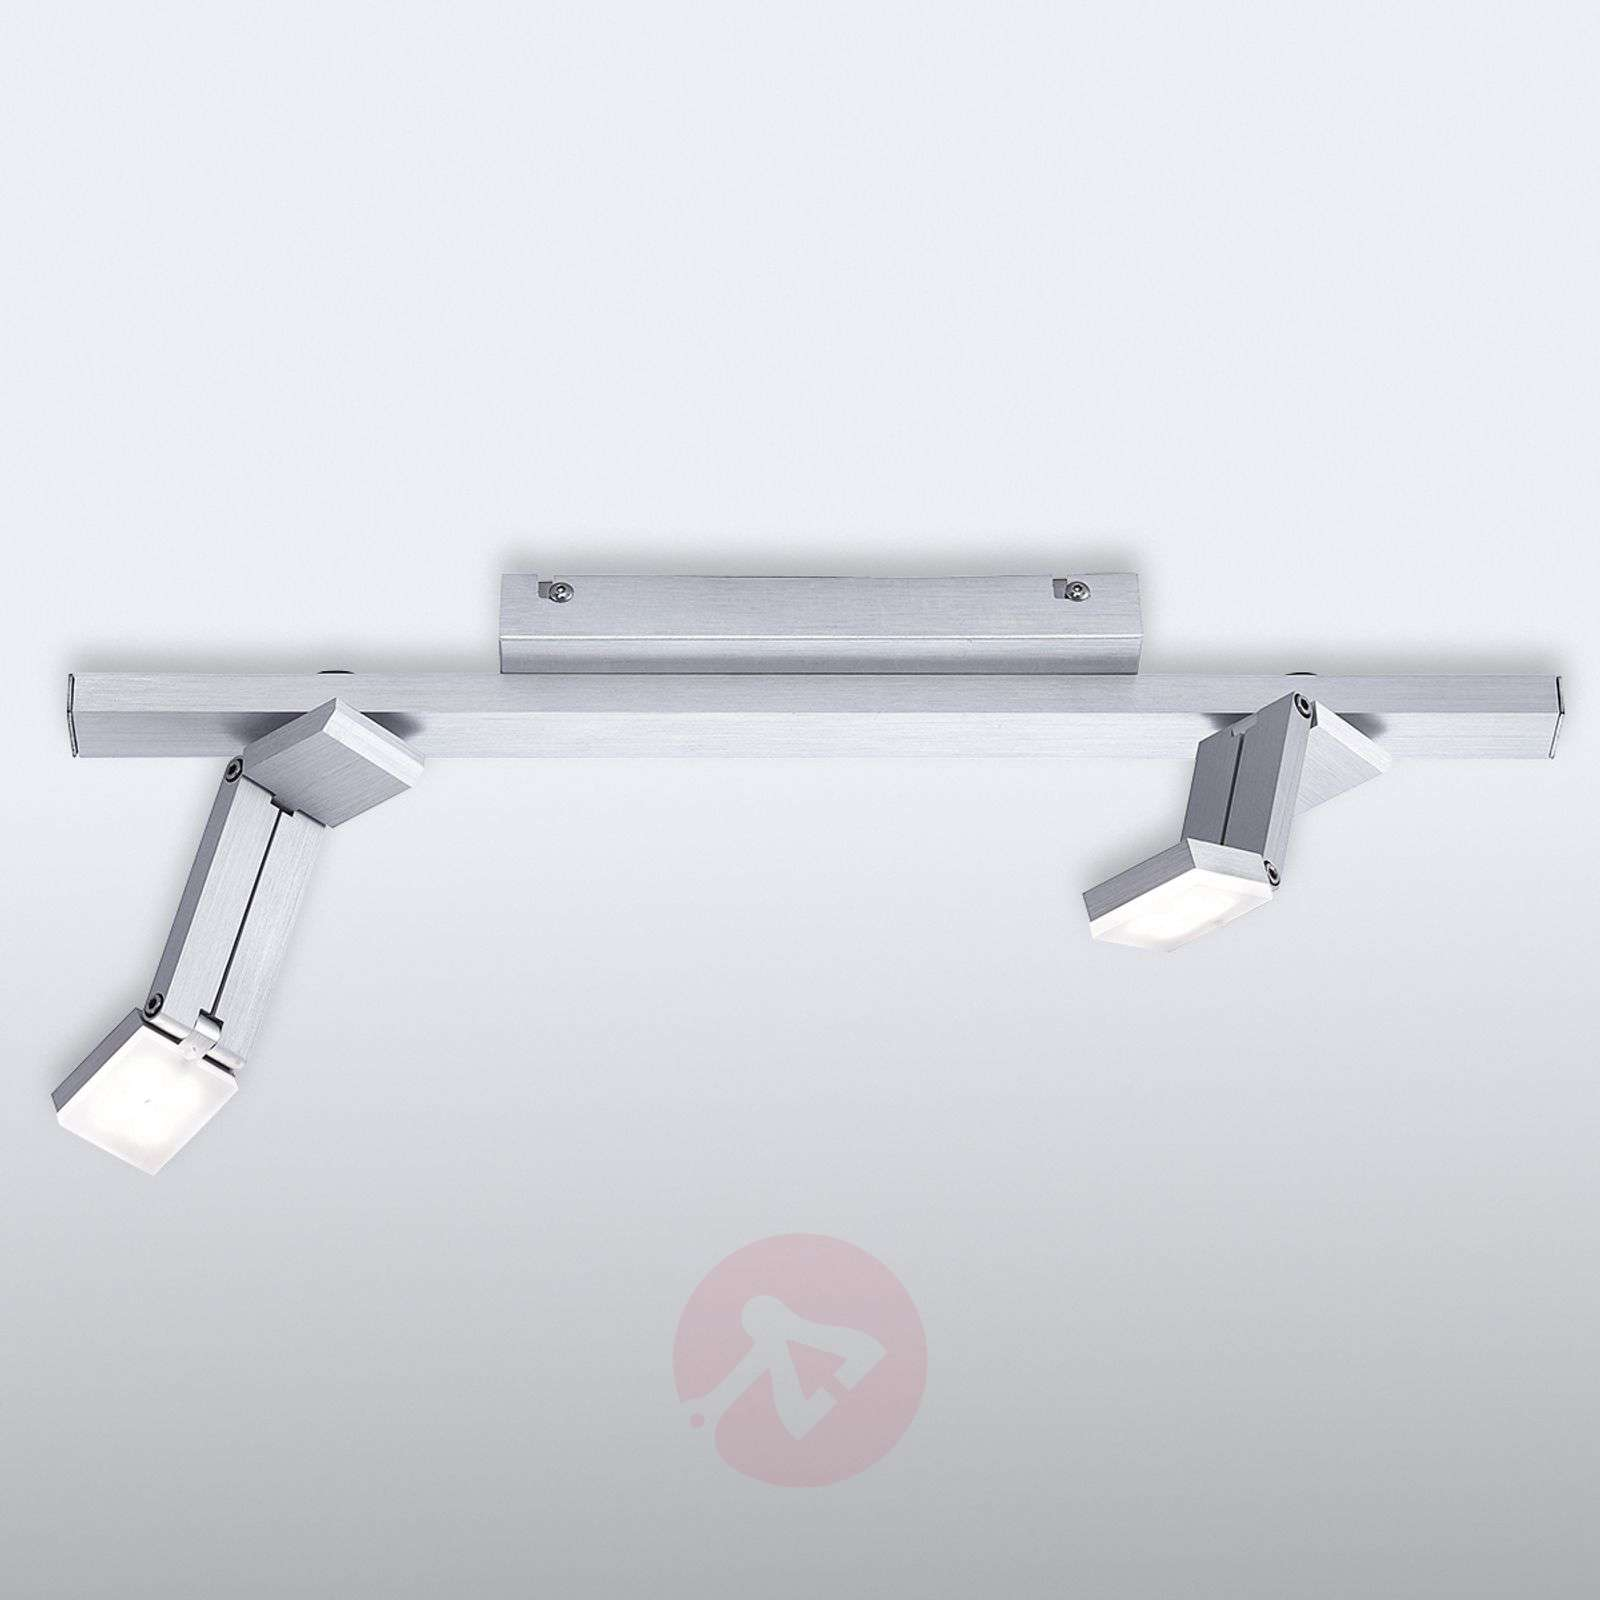 Transform Plafonnier LED 2 lampes, dimmable-7610522-01